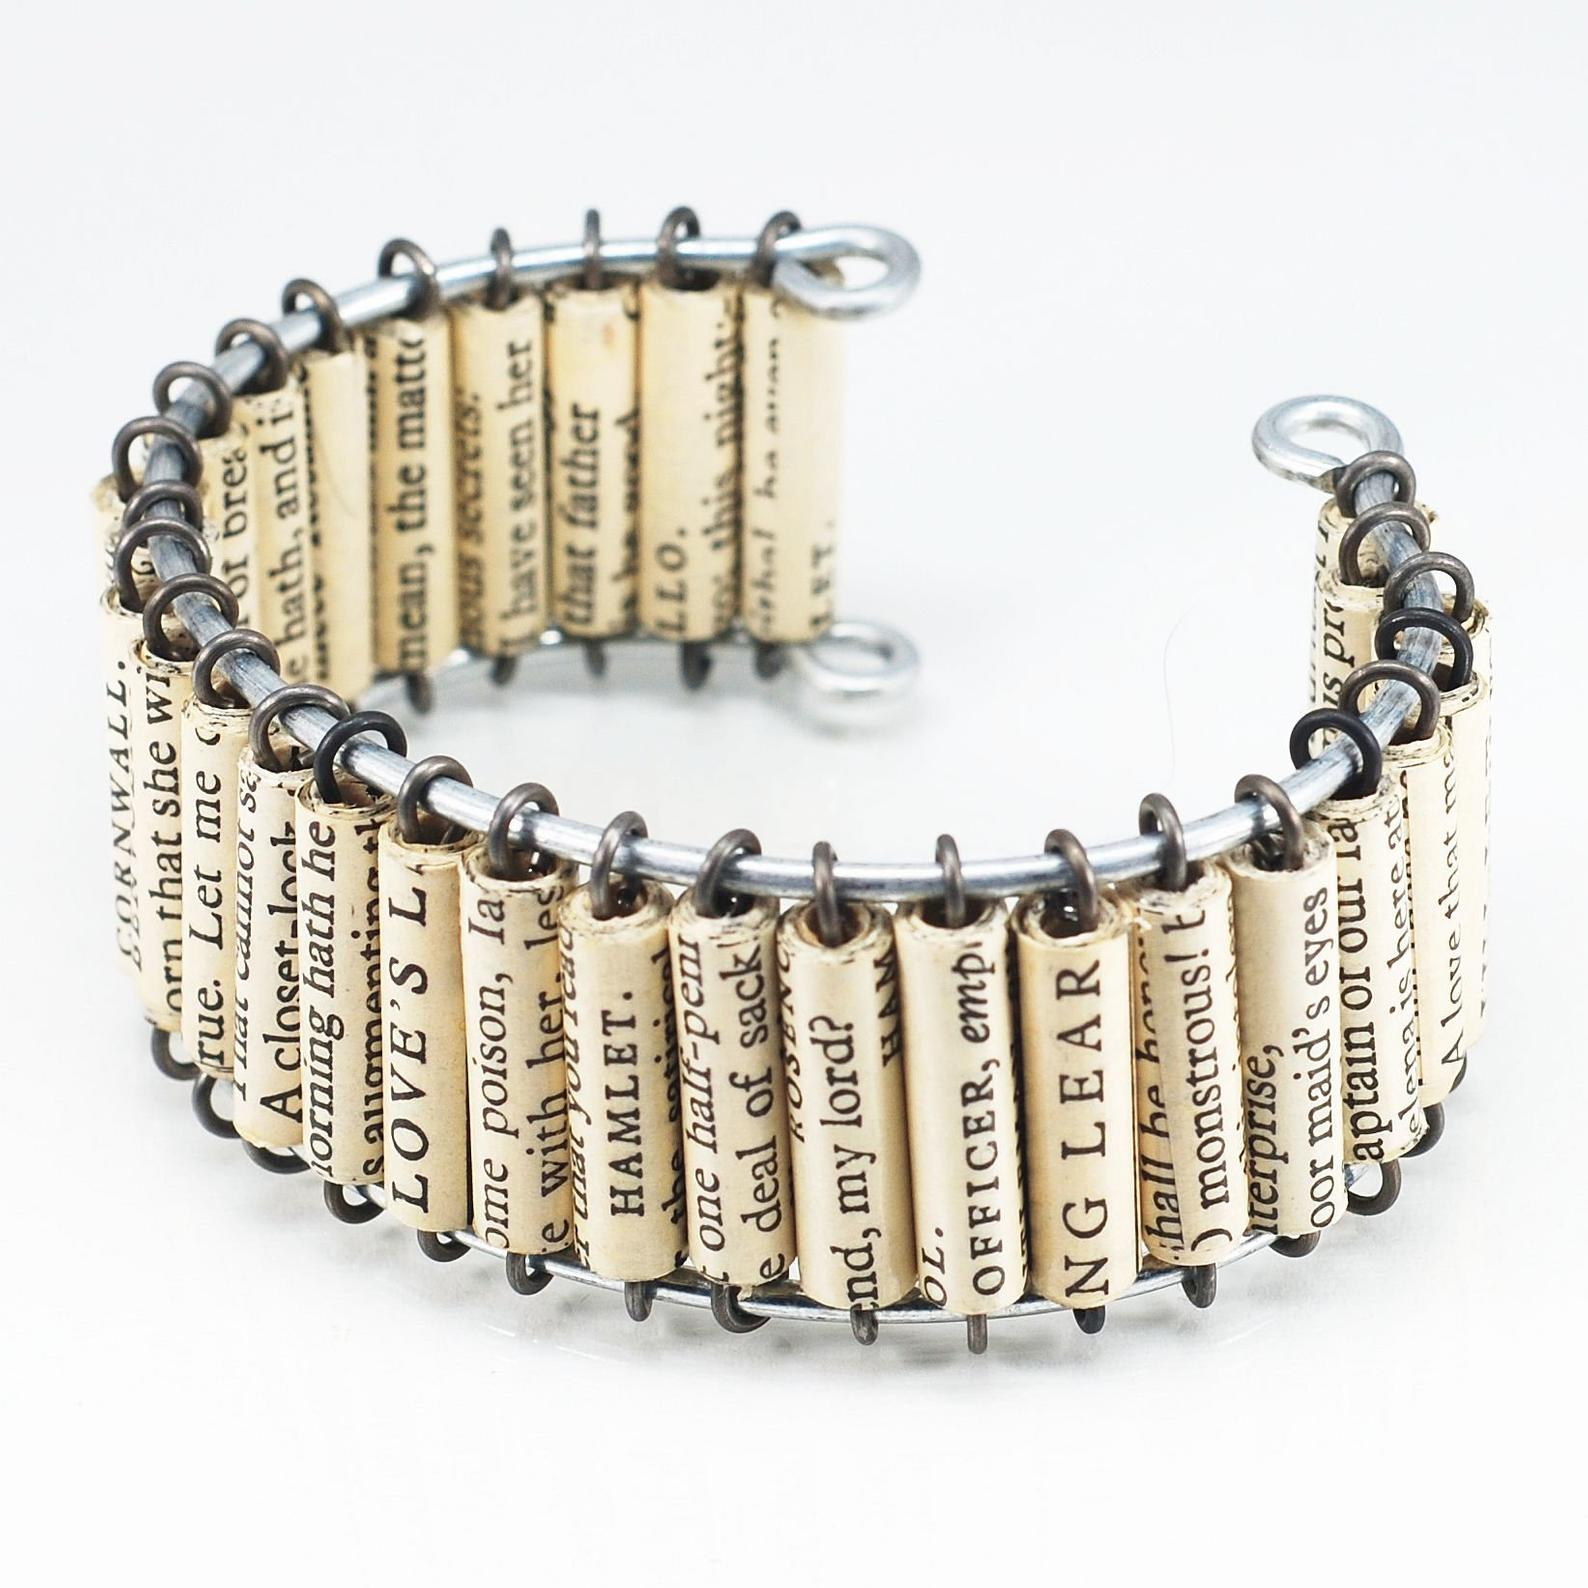 Shakespeare Bracelet Upcycled by Gifter World